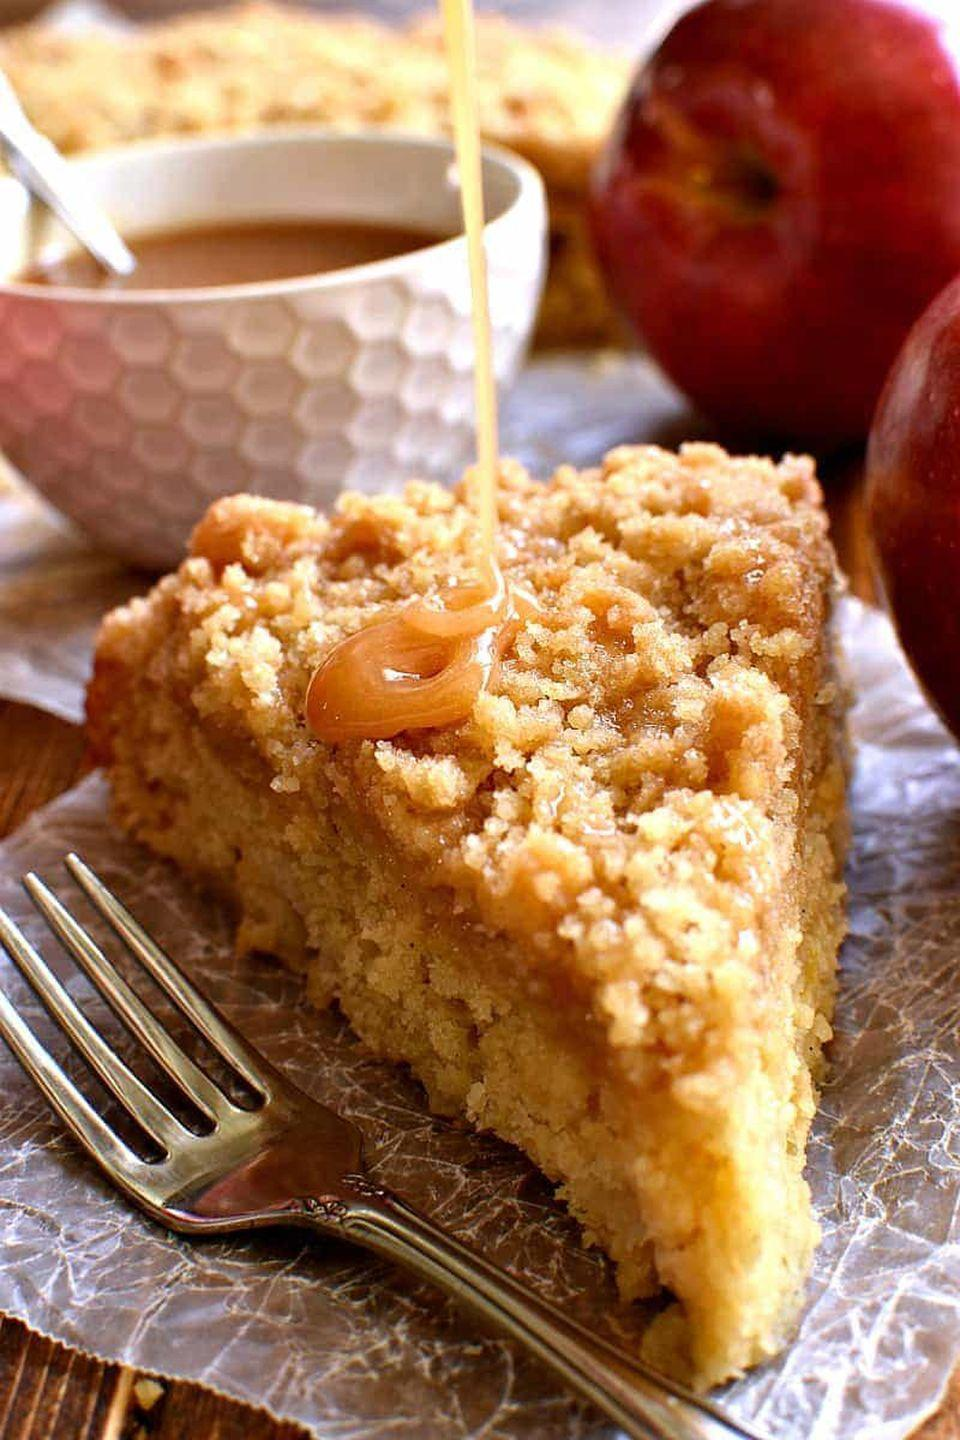 "<p>How to make coffee cake even better? Mixing in fresh apples, sweet caramel, and a crumbly streusel.</p><p><strong>Get the recipe at <a href=""https://www.lemontreedwelling.com/caramel-apple-coffee-cake/"" rel=""nofollow noopener"" target=""_blank"" data-ylk=""slk:Lemon Tree Dwelling"" class=""link rapid-noclick-resp"">Lemon Tree Dwelling</a>.</strong></p>"